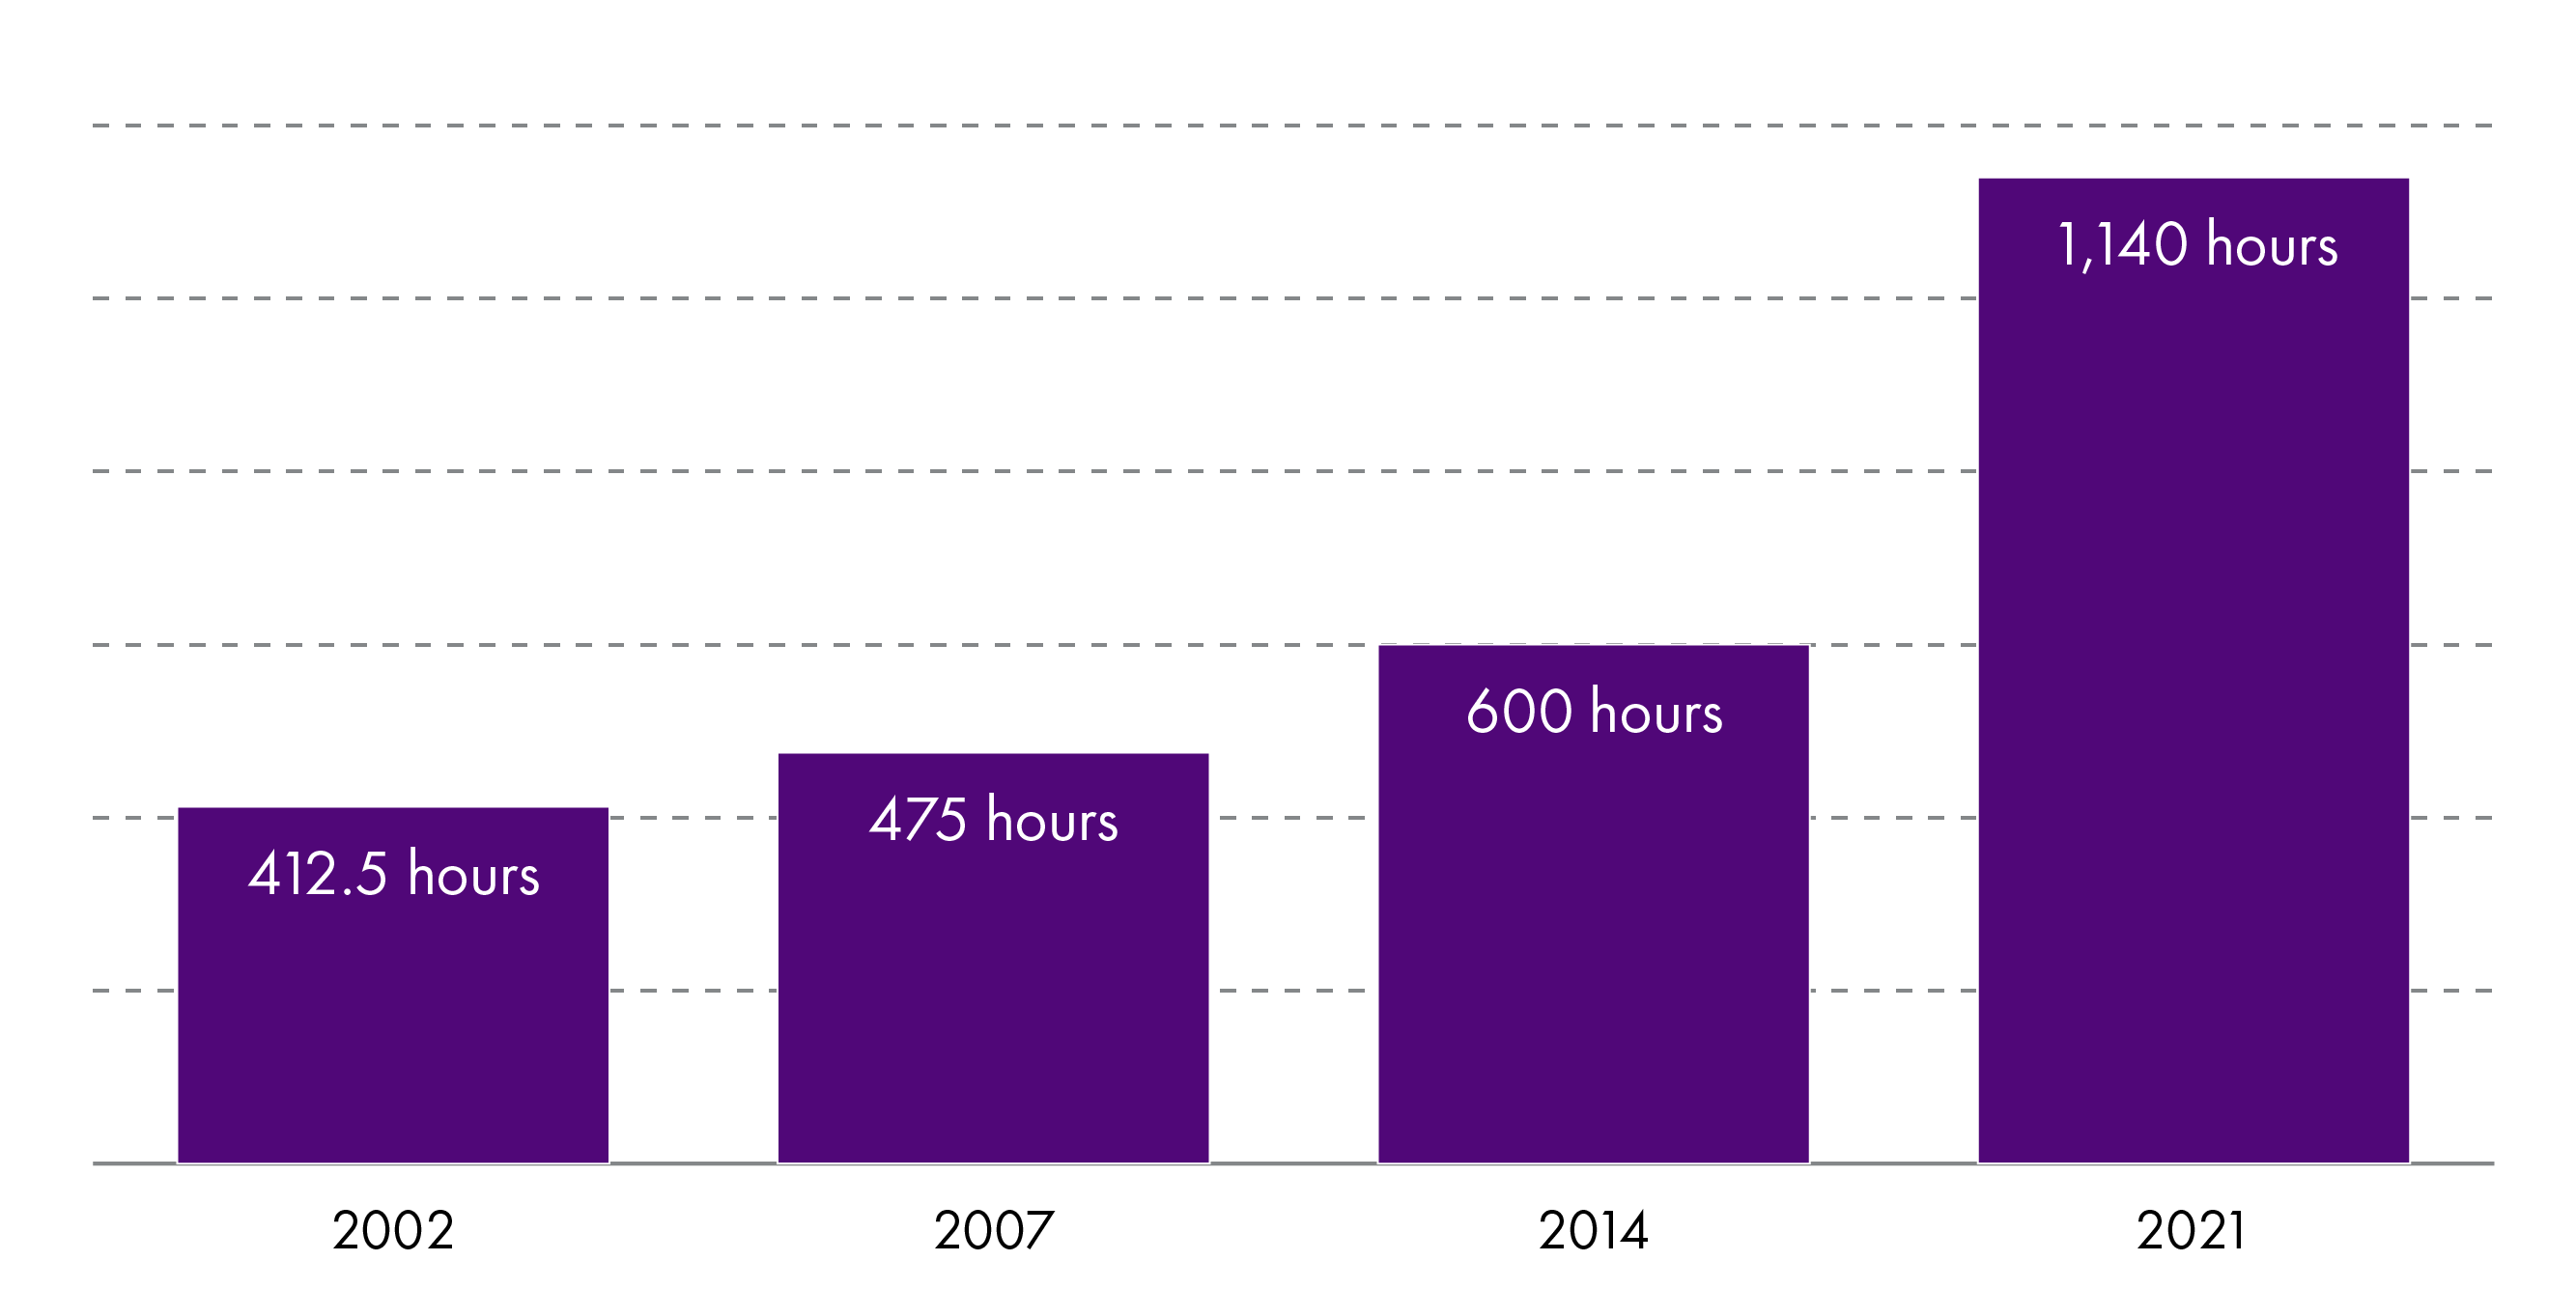 The number of funded hours of ELC in 2002 was 412.5 hours. This increased to 475 hours in 2007, 600 hours in 2014 and 1140 hours in 2021.